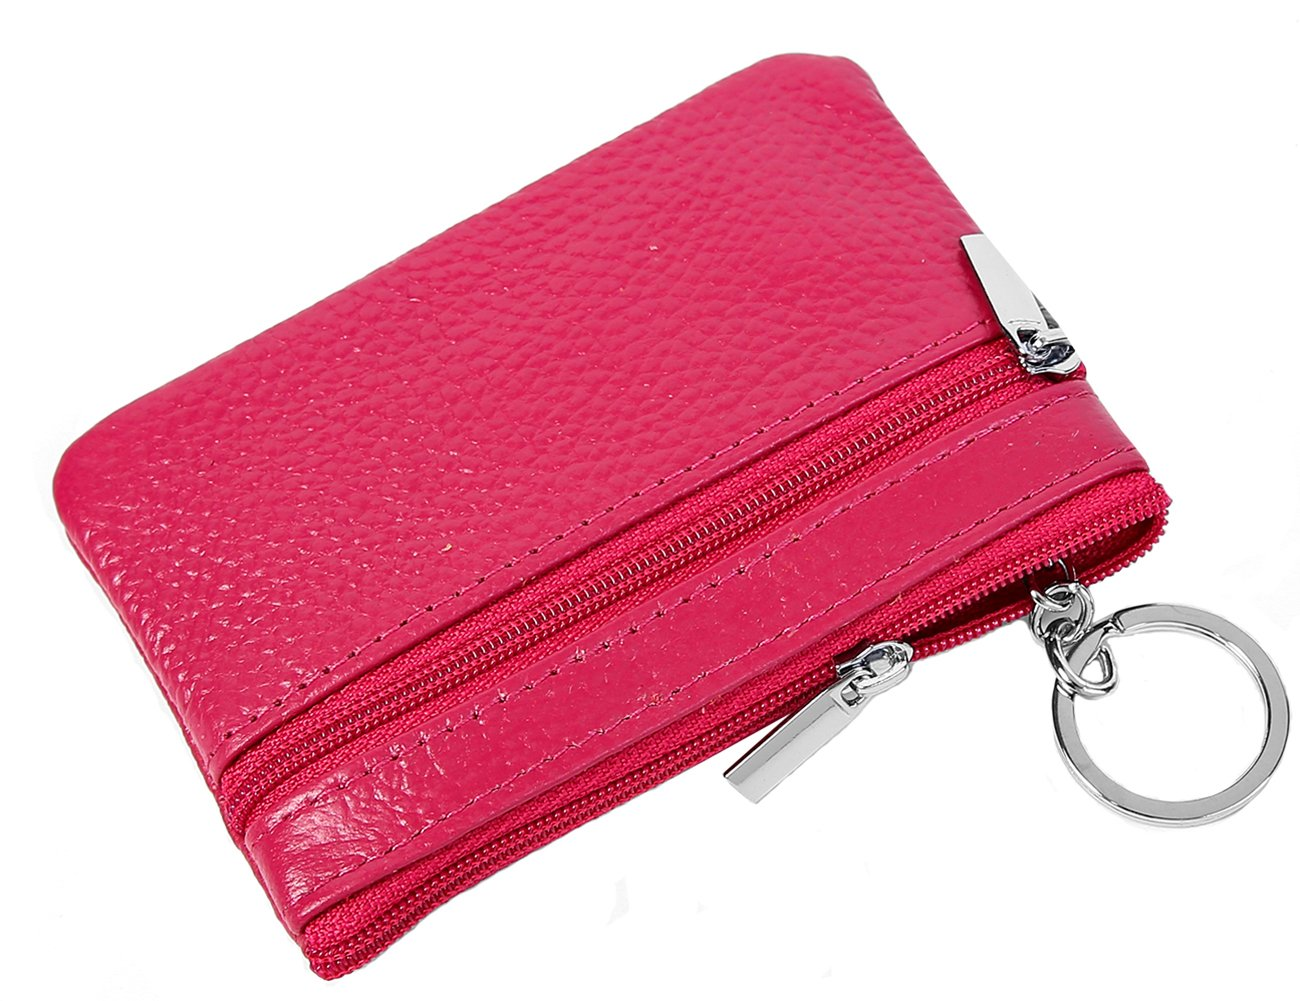 iSuperb RFID Blocking Coin Purse Genuine Leather Zipper Large Capacity Change Pouch Cash Credit Card Holder Wallet with Key Ring for Women Men